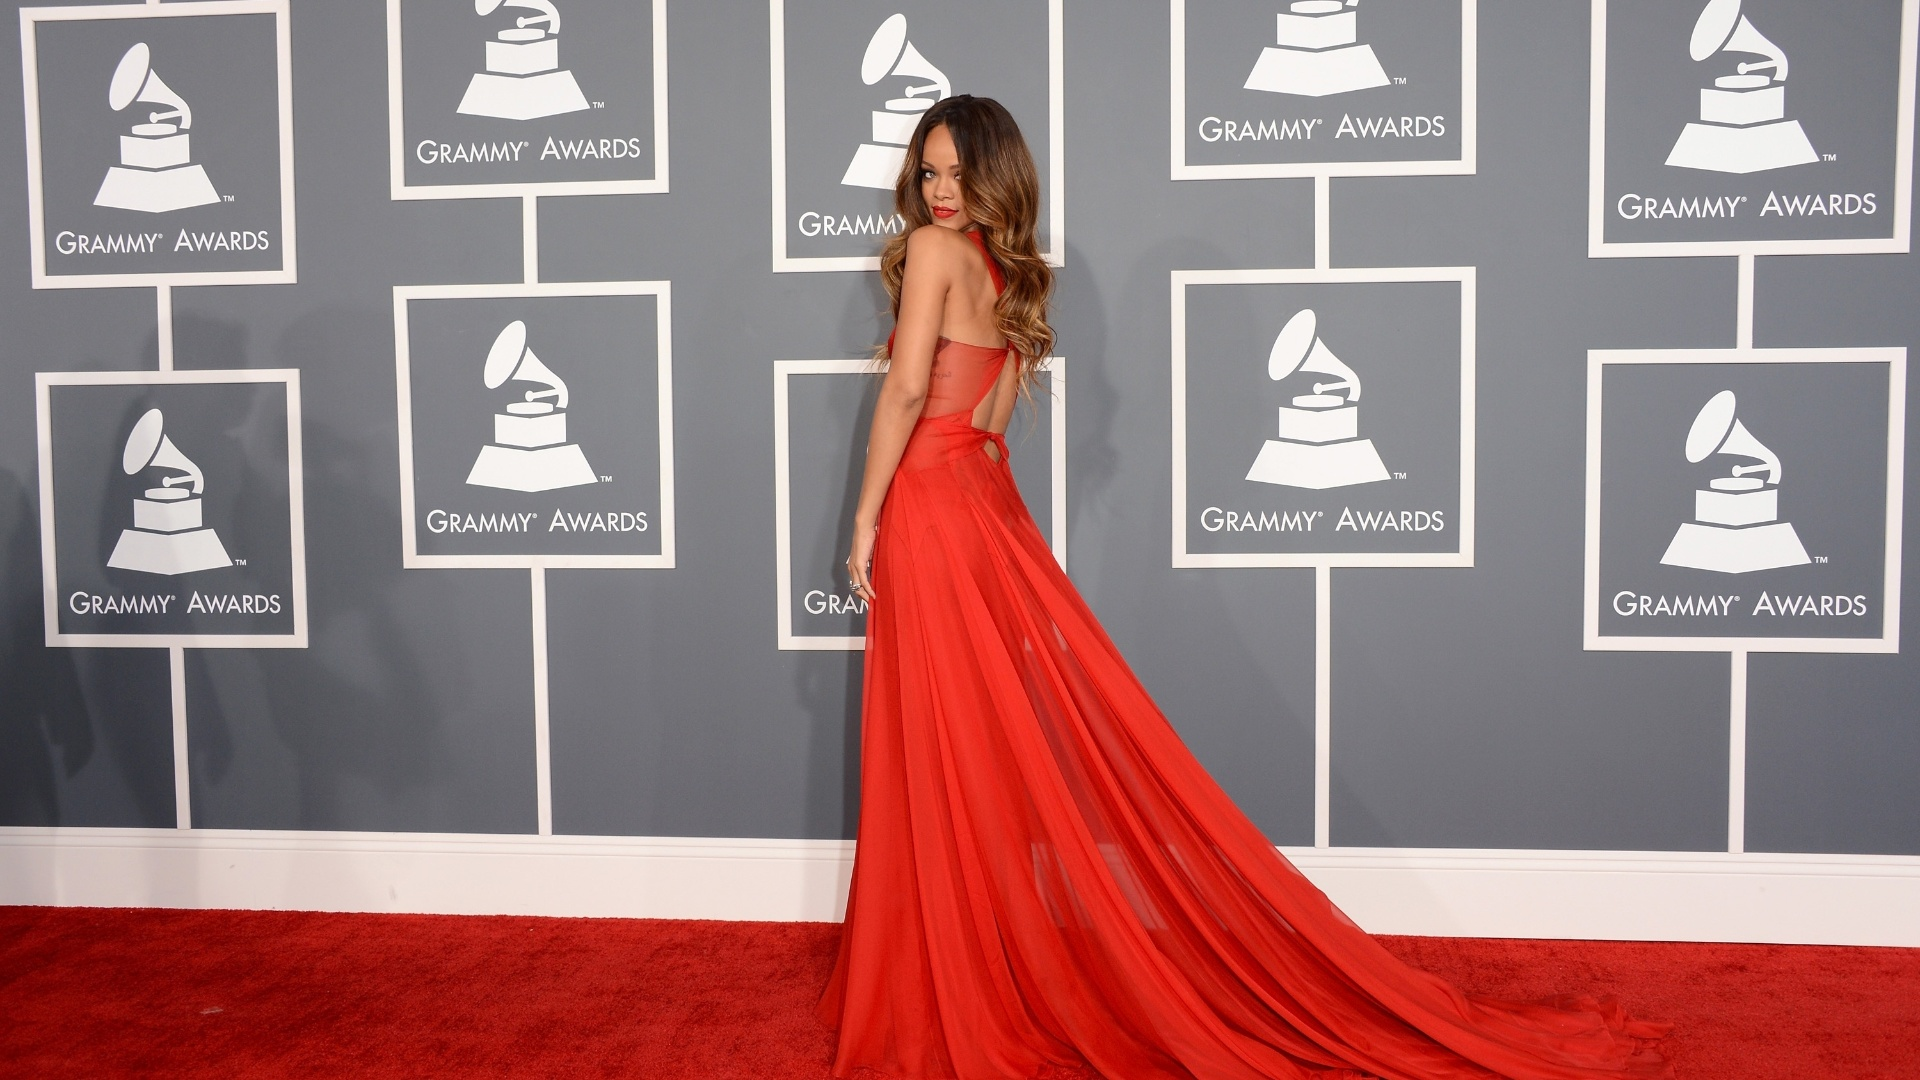 10.fev.2013 - Rihanna posa para os fotgrafos no tapete vermelho do Grammy